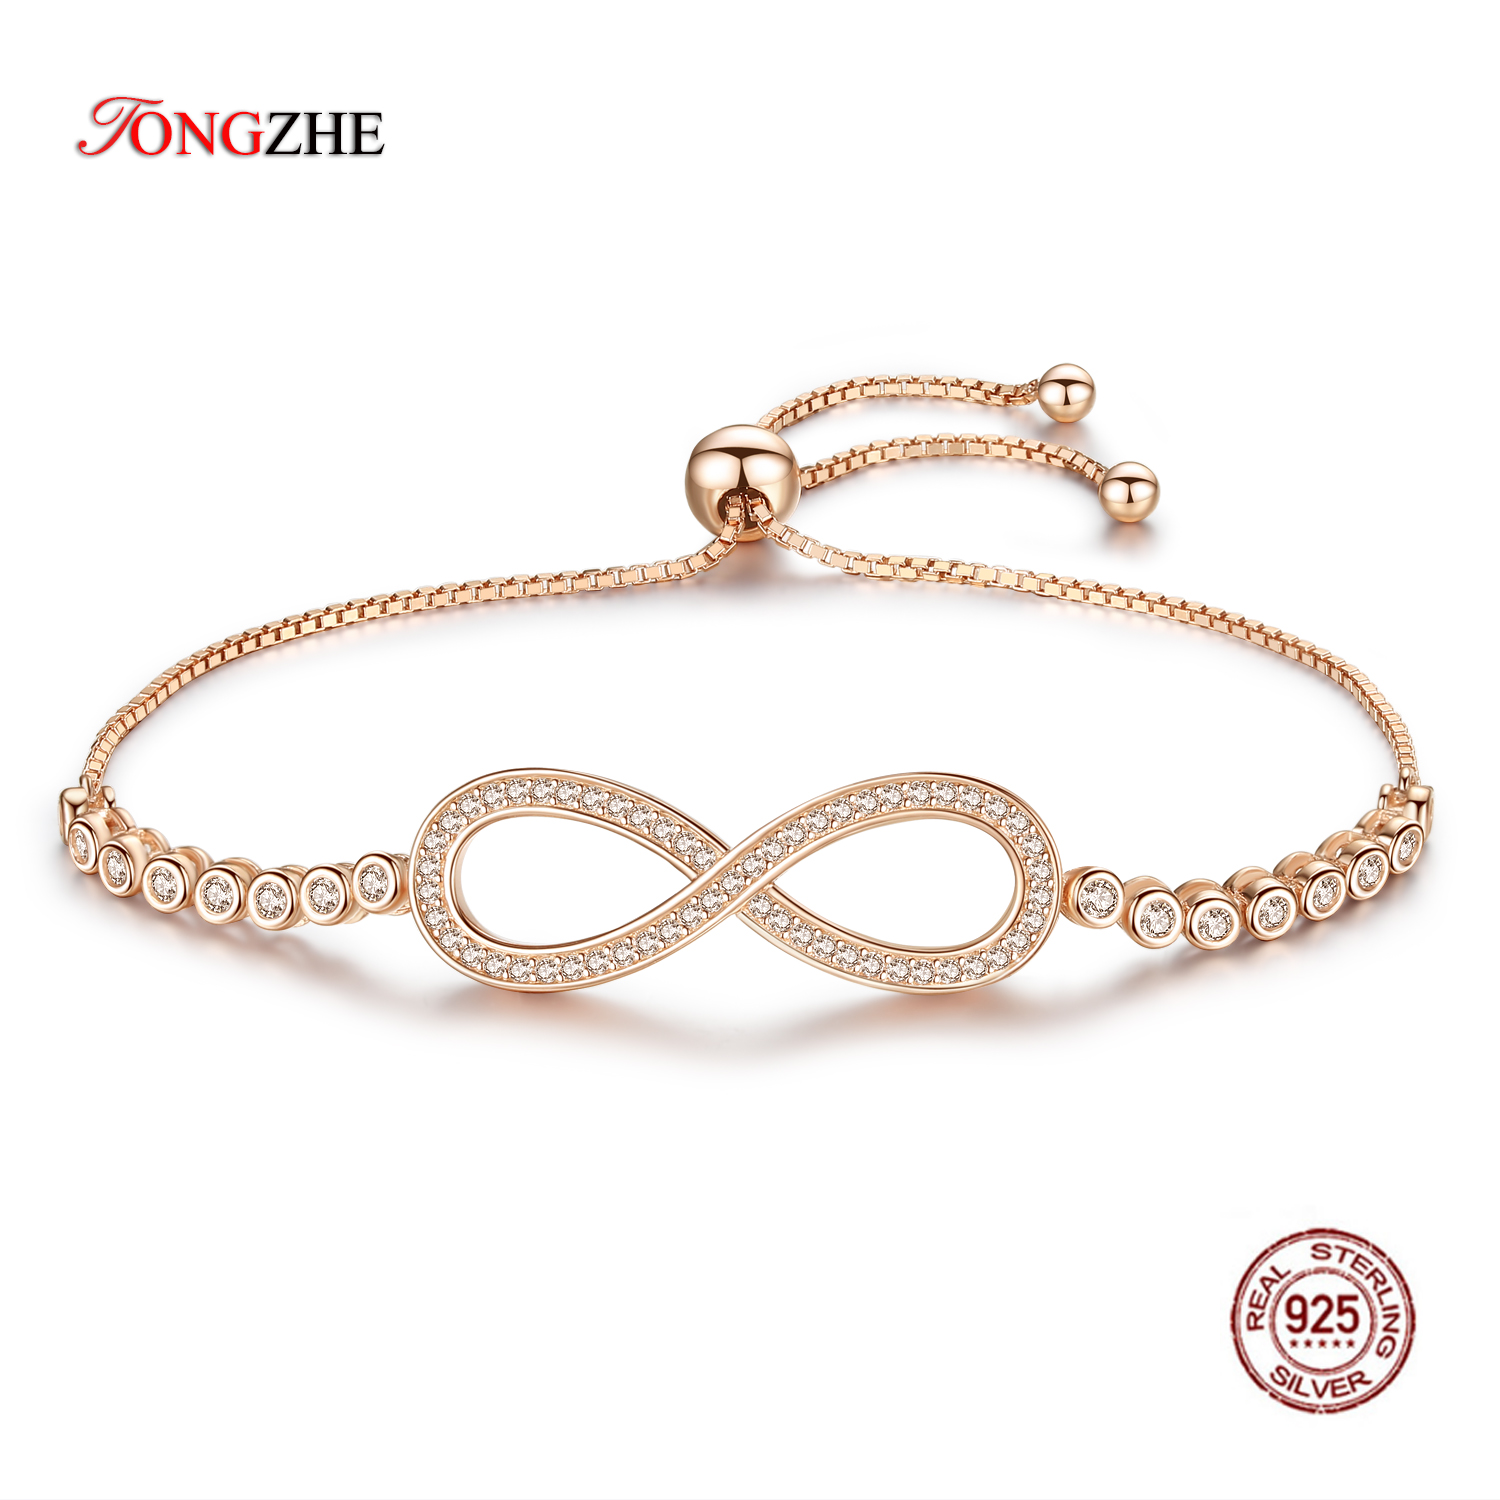 TONGZHE Endless Mens Bracelets 2018 Sterling Silver 925 CZ Rose Gold Charm Infinity Tennis Bracelets for Women Jewelry Pulsera buy mens string bracelets